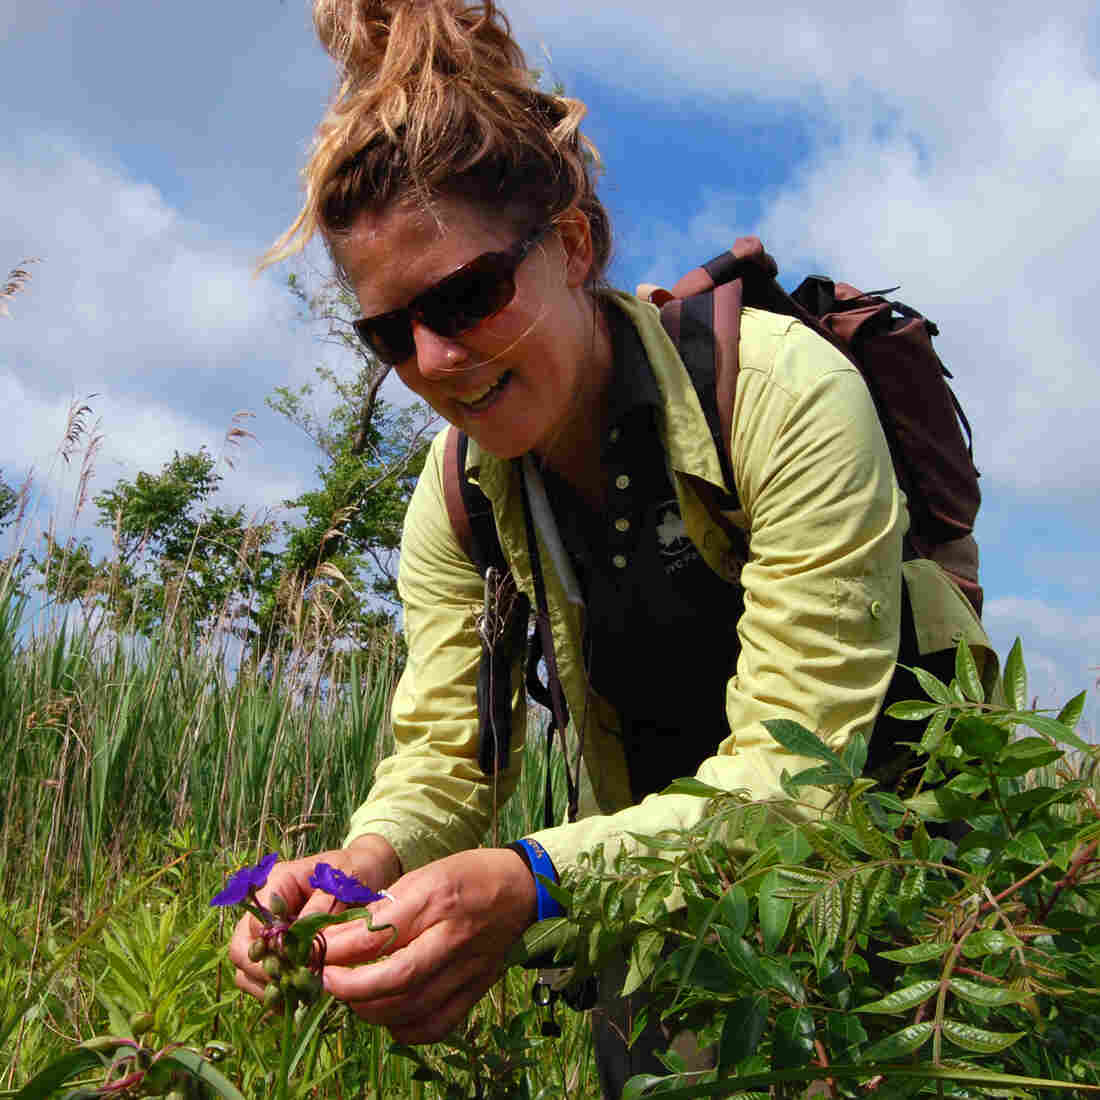 Heather Liljengren, a field taxonomist with the New York City Department of Parks and Recreation, examines the seed pods of the Virginia spiderwort at Oakwood Beach, Staten Island. Liljengren collects seeds from across the region for a seed bank of native plants.